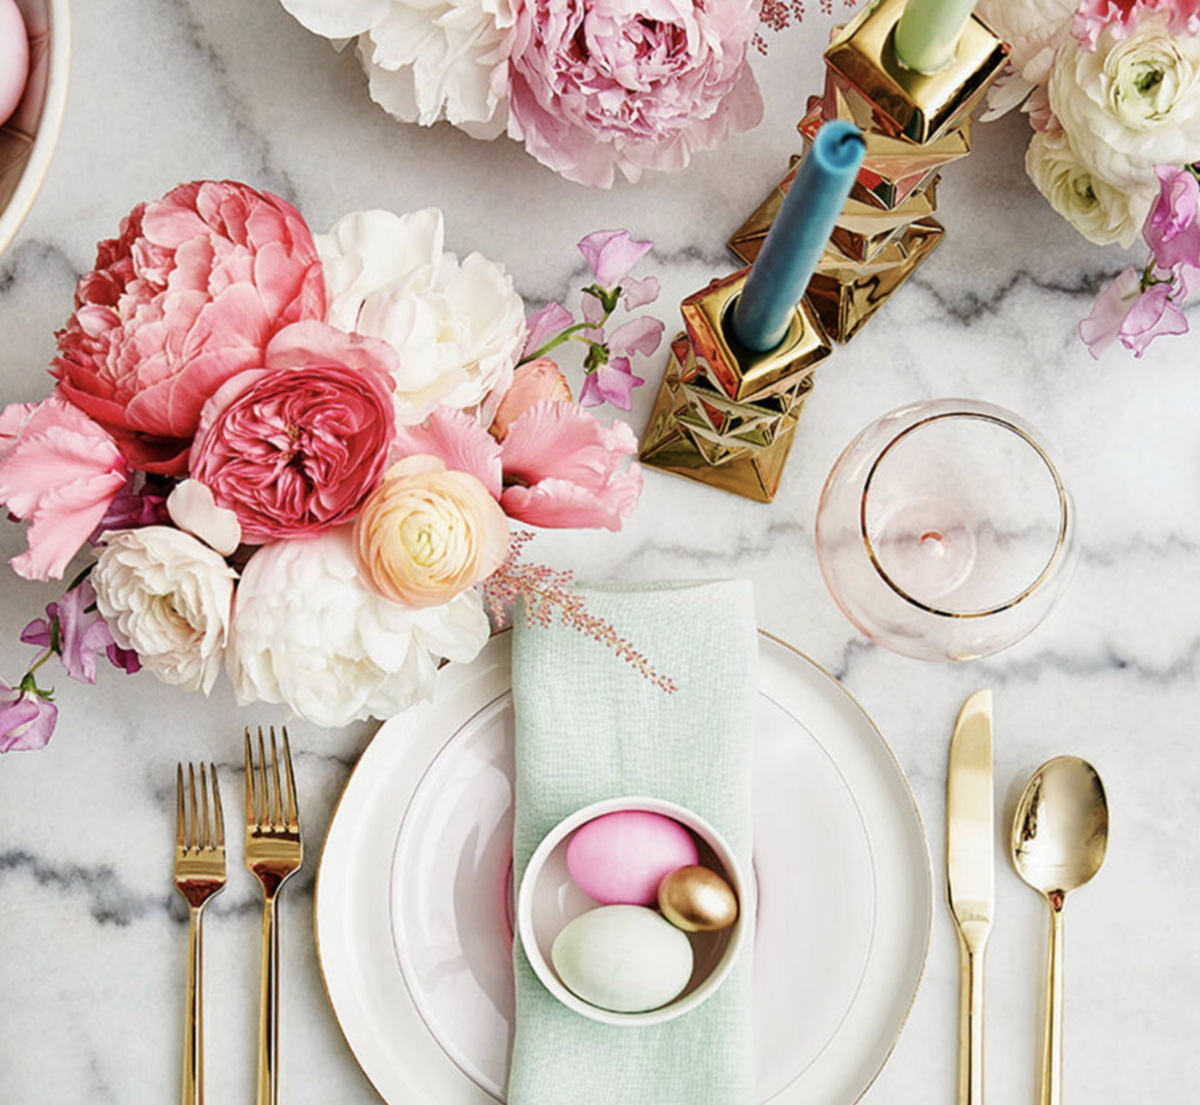 setting-Easter-table-in-the-south-6